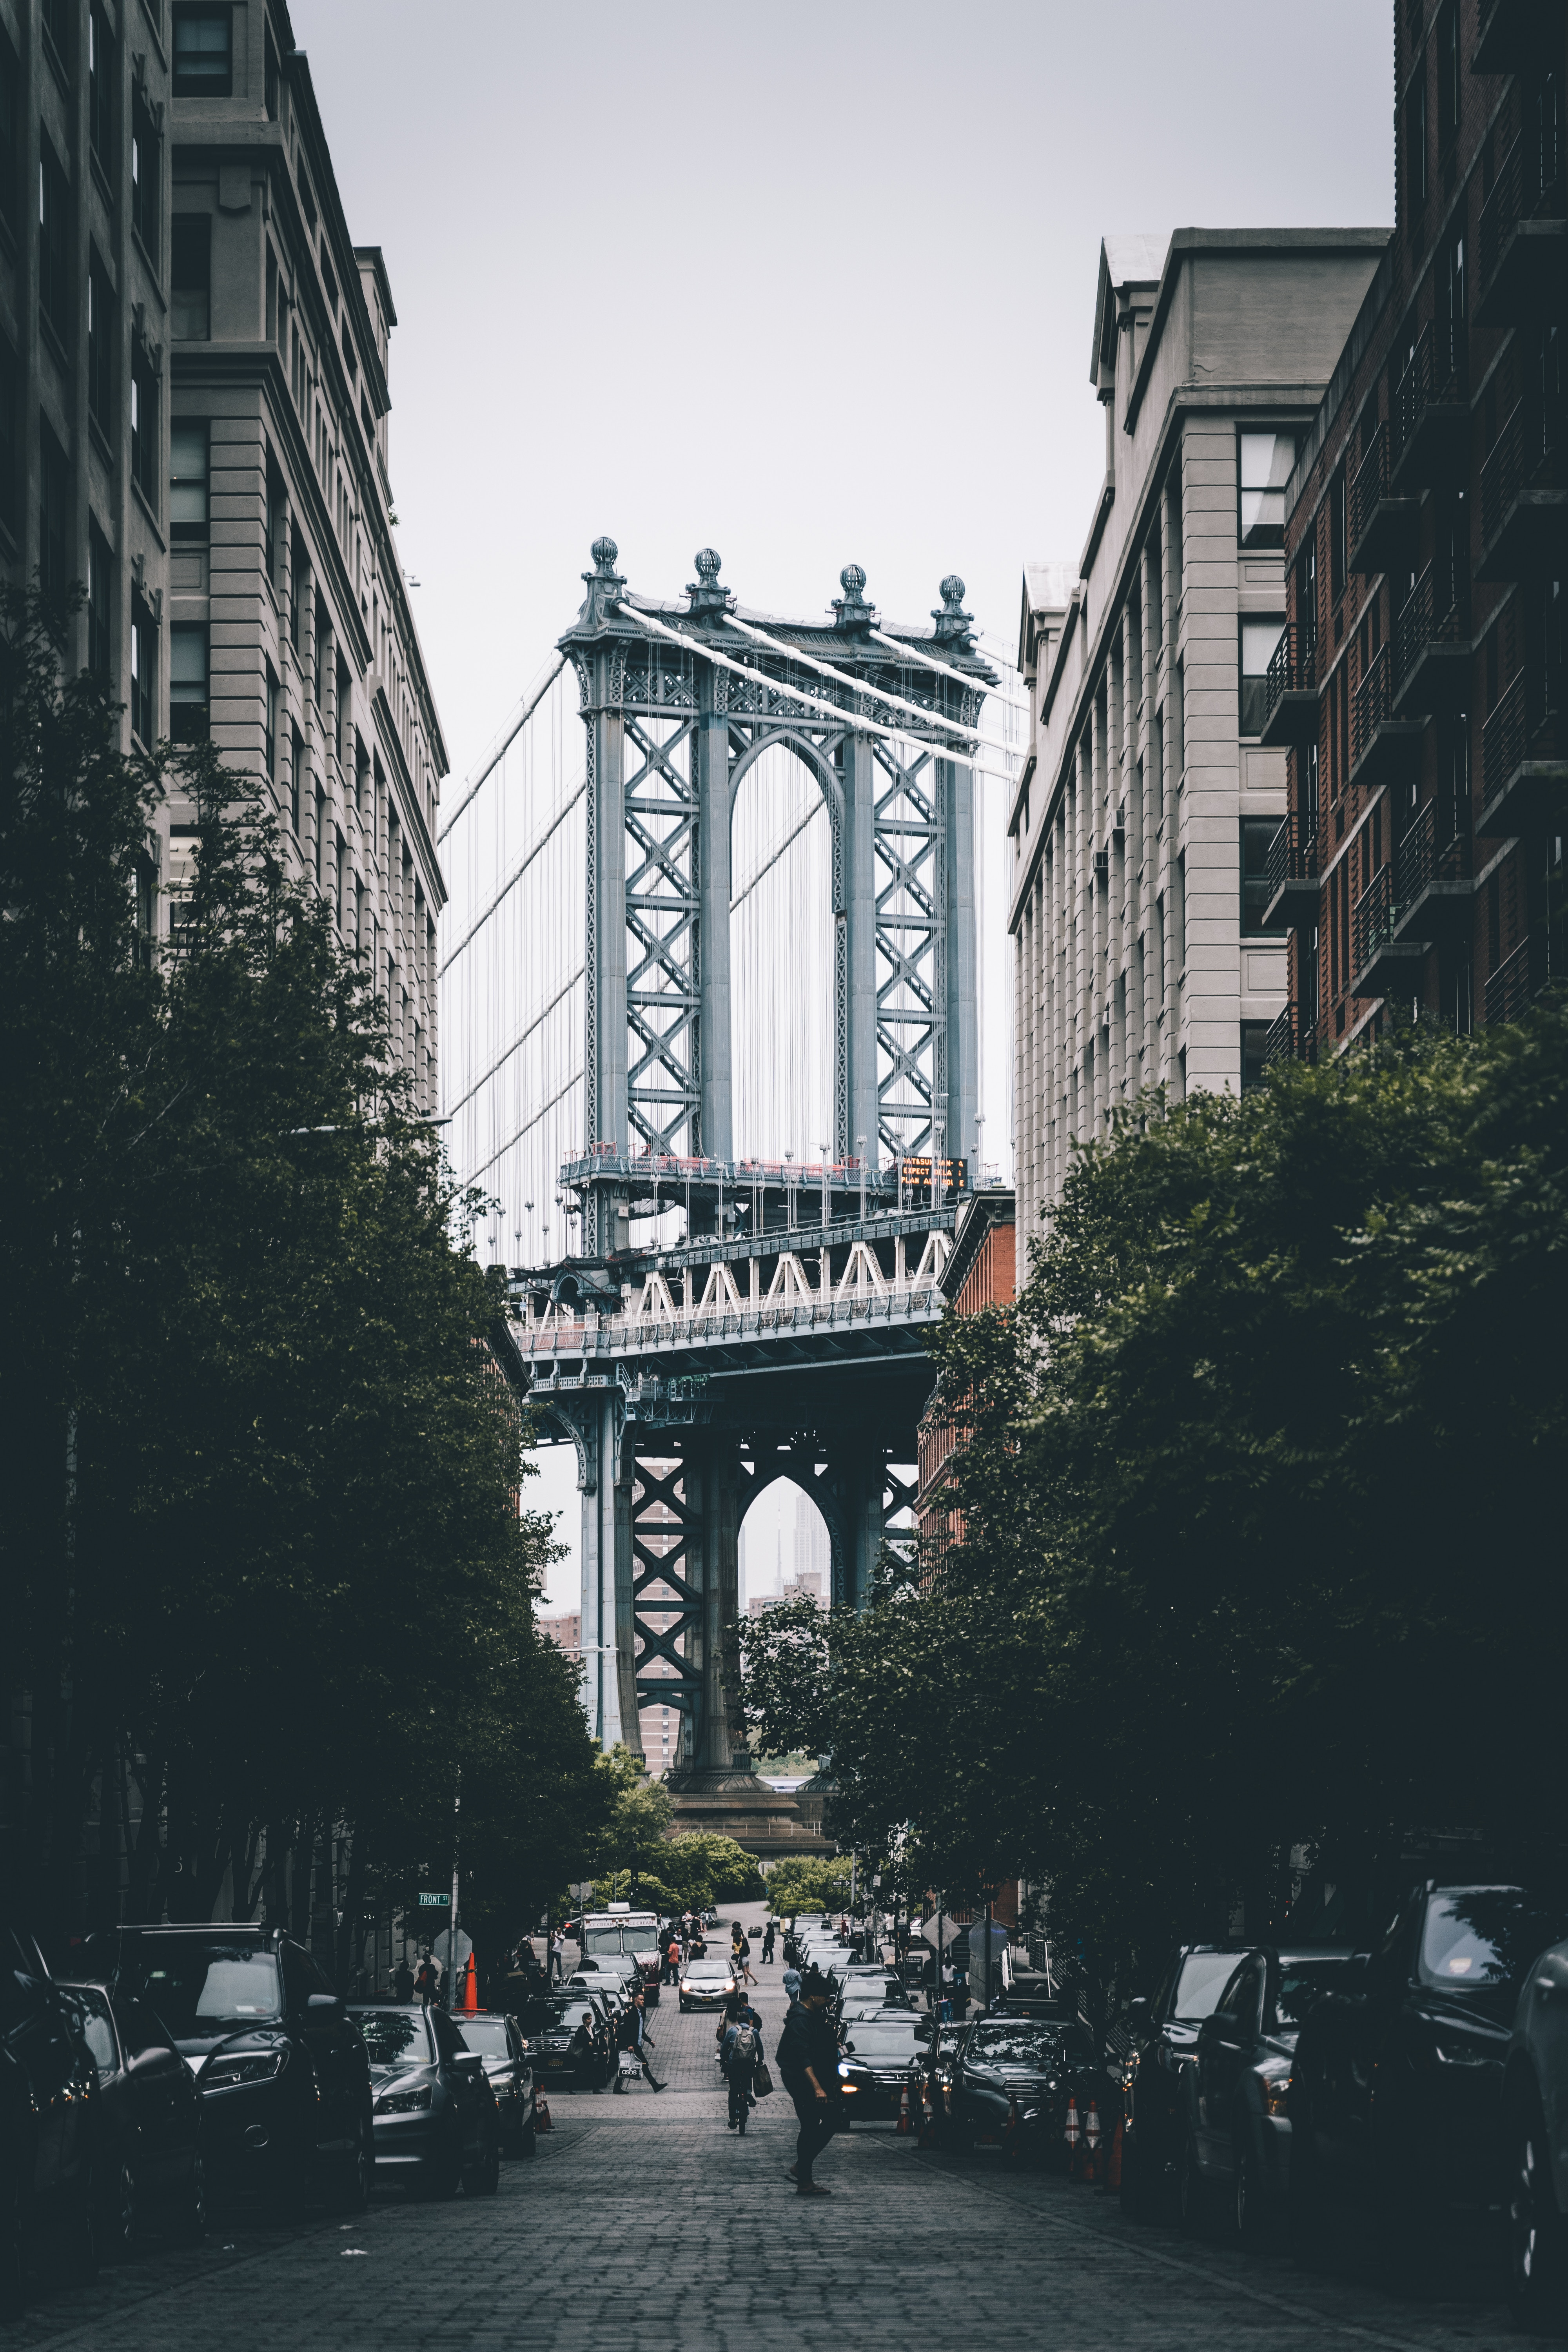 145482 download wallpaper City, Street, Building, People, Architecture, Cities, Auto screensavers and pictures for free